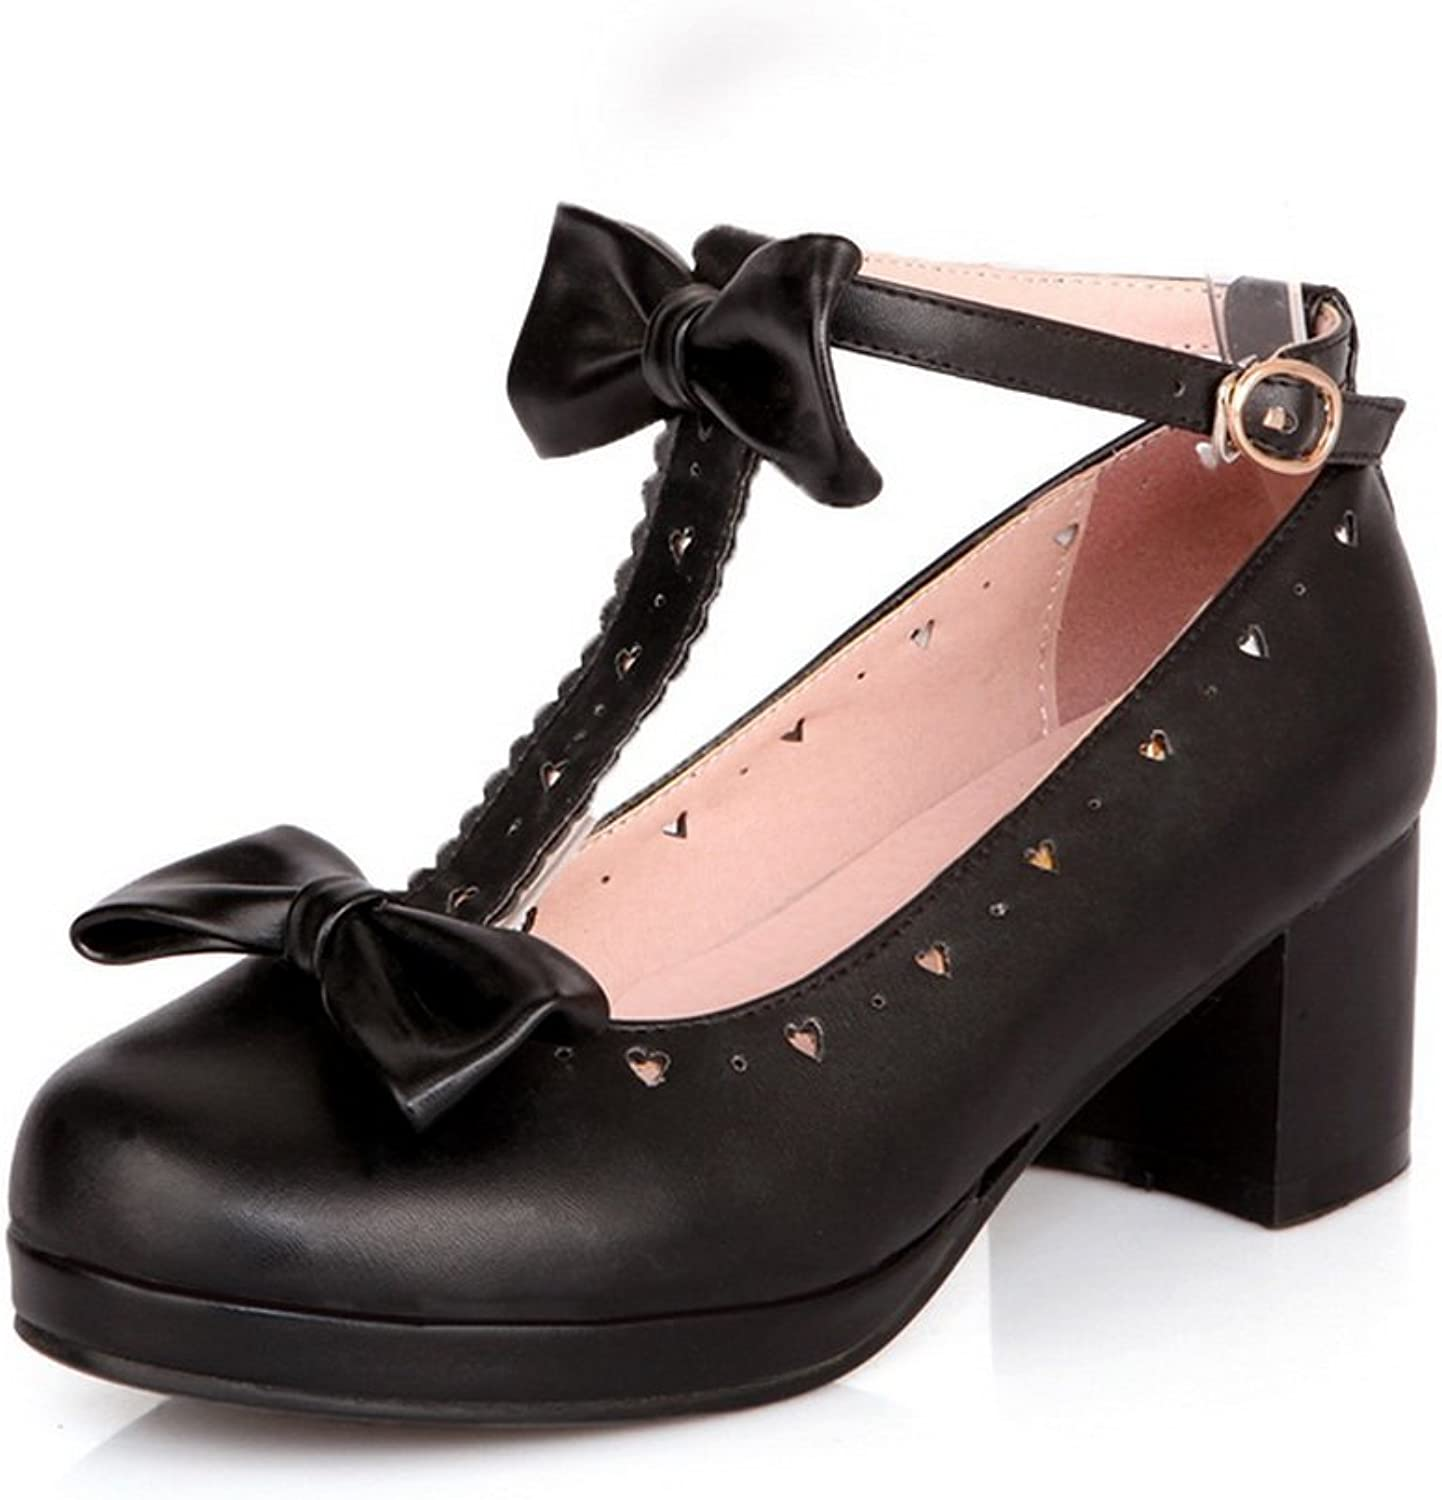 1TO9 Womens Buckle Spun gold Bowknot Round-Toe Black Rubber Pumps-shoes - 7.5 B(M) US